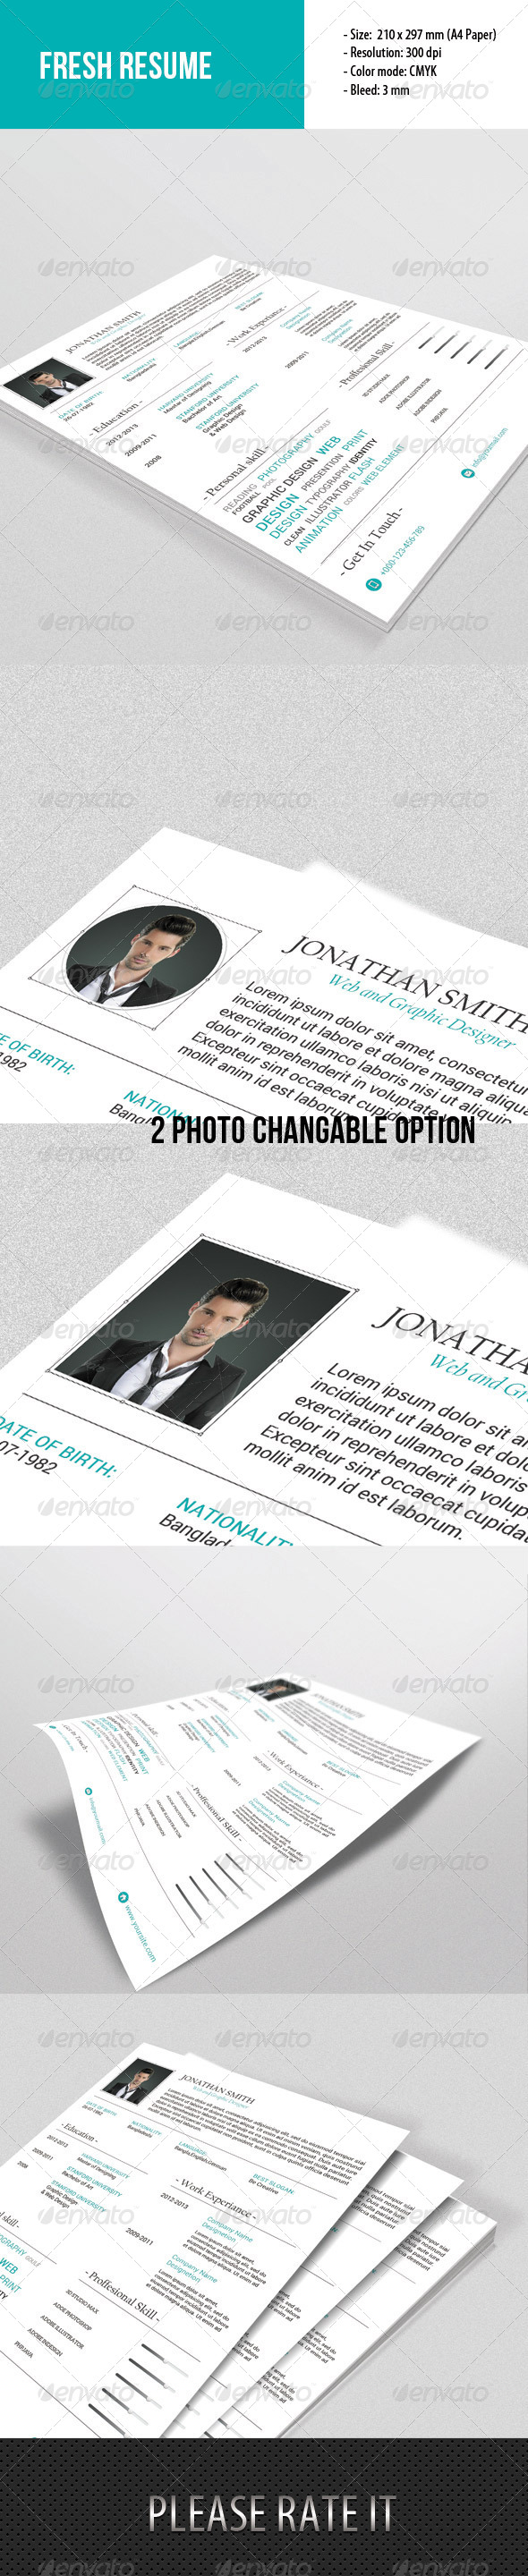 GraphicRiver Fresh Resume Template 6684471